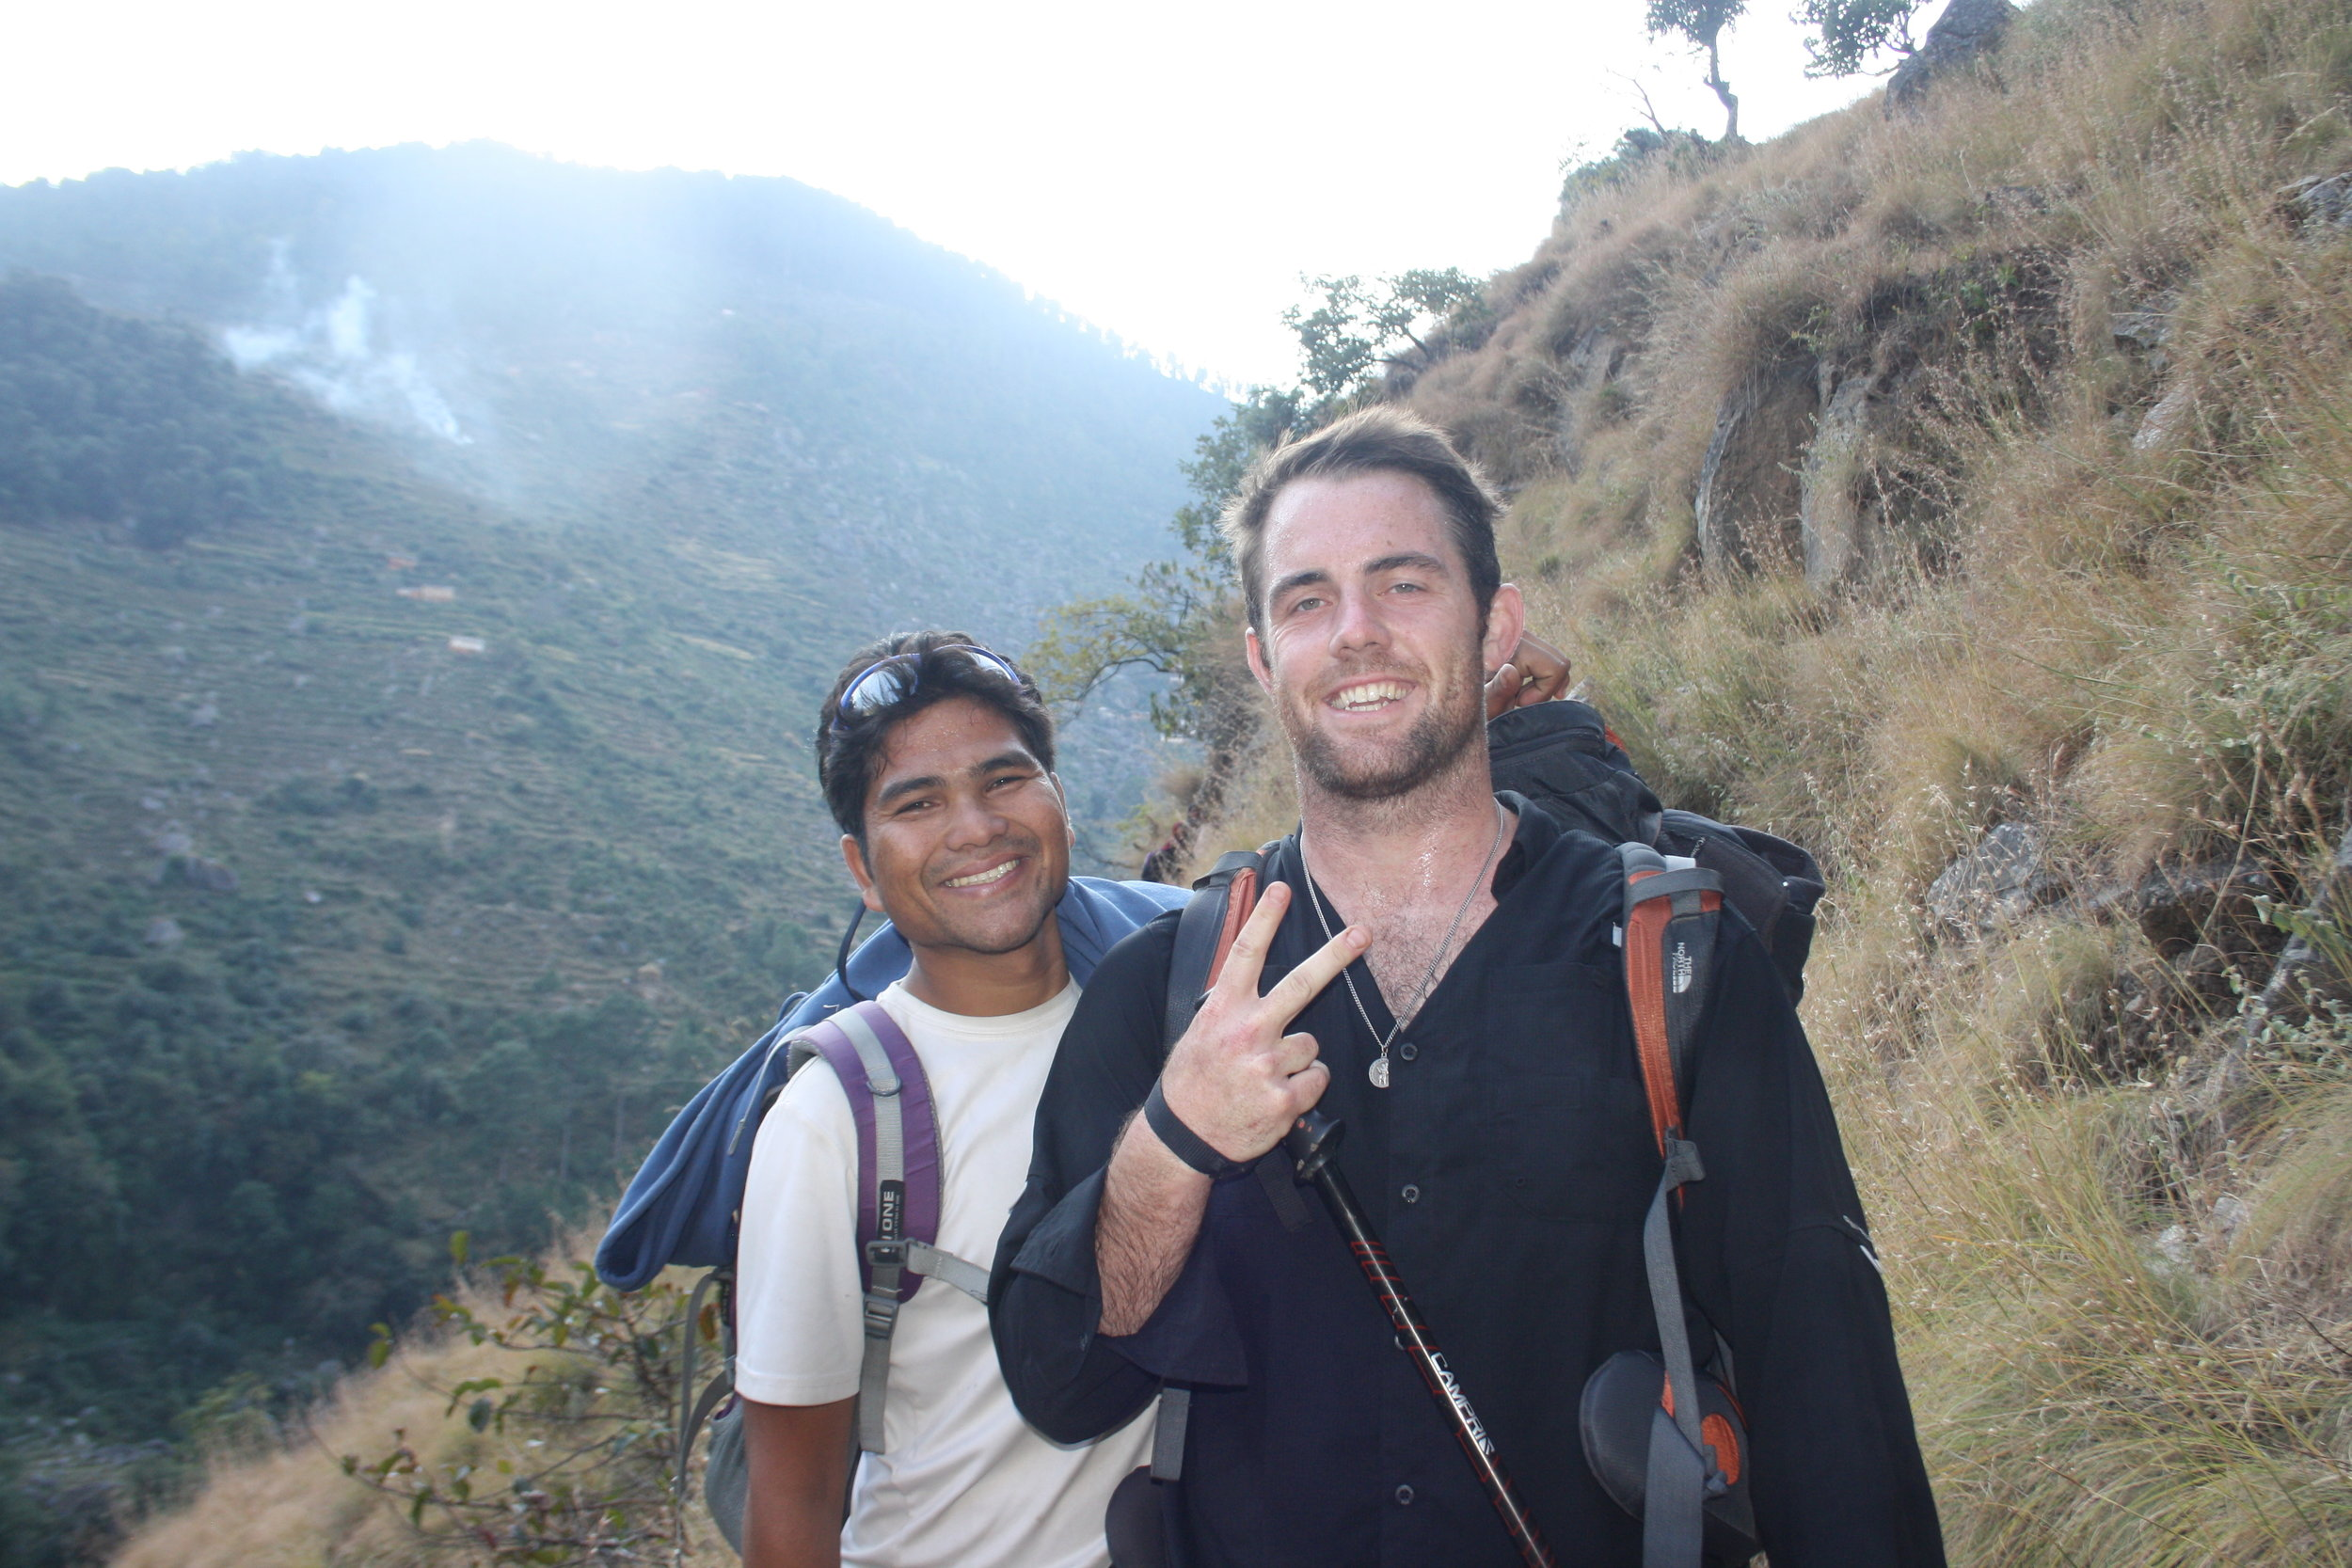 John and Karan hiking into Oda on one of their first trips together in Kalikot.